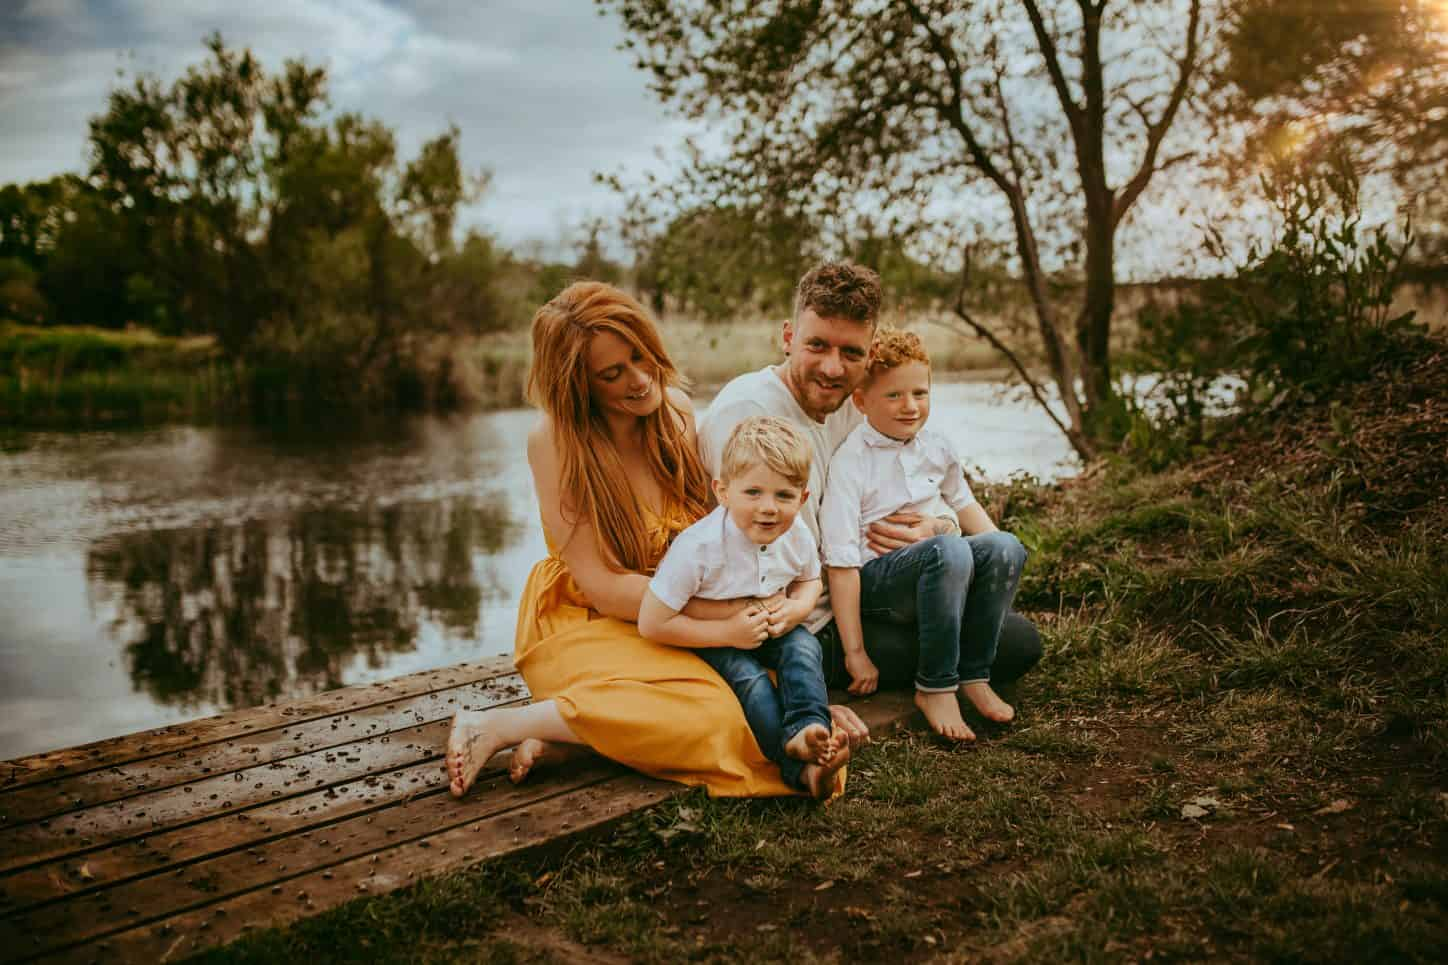 dorset location outdoor photographer poole bournemouth blandford3